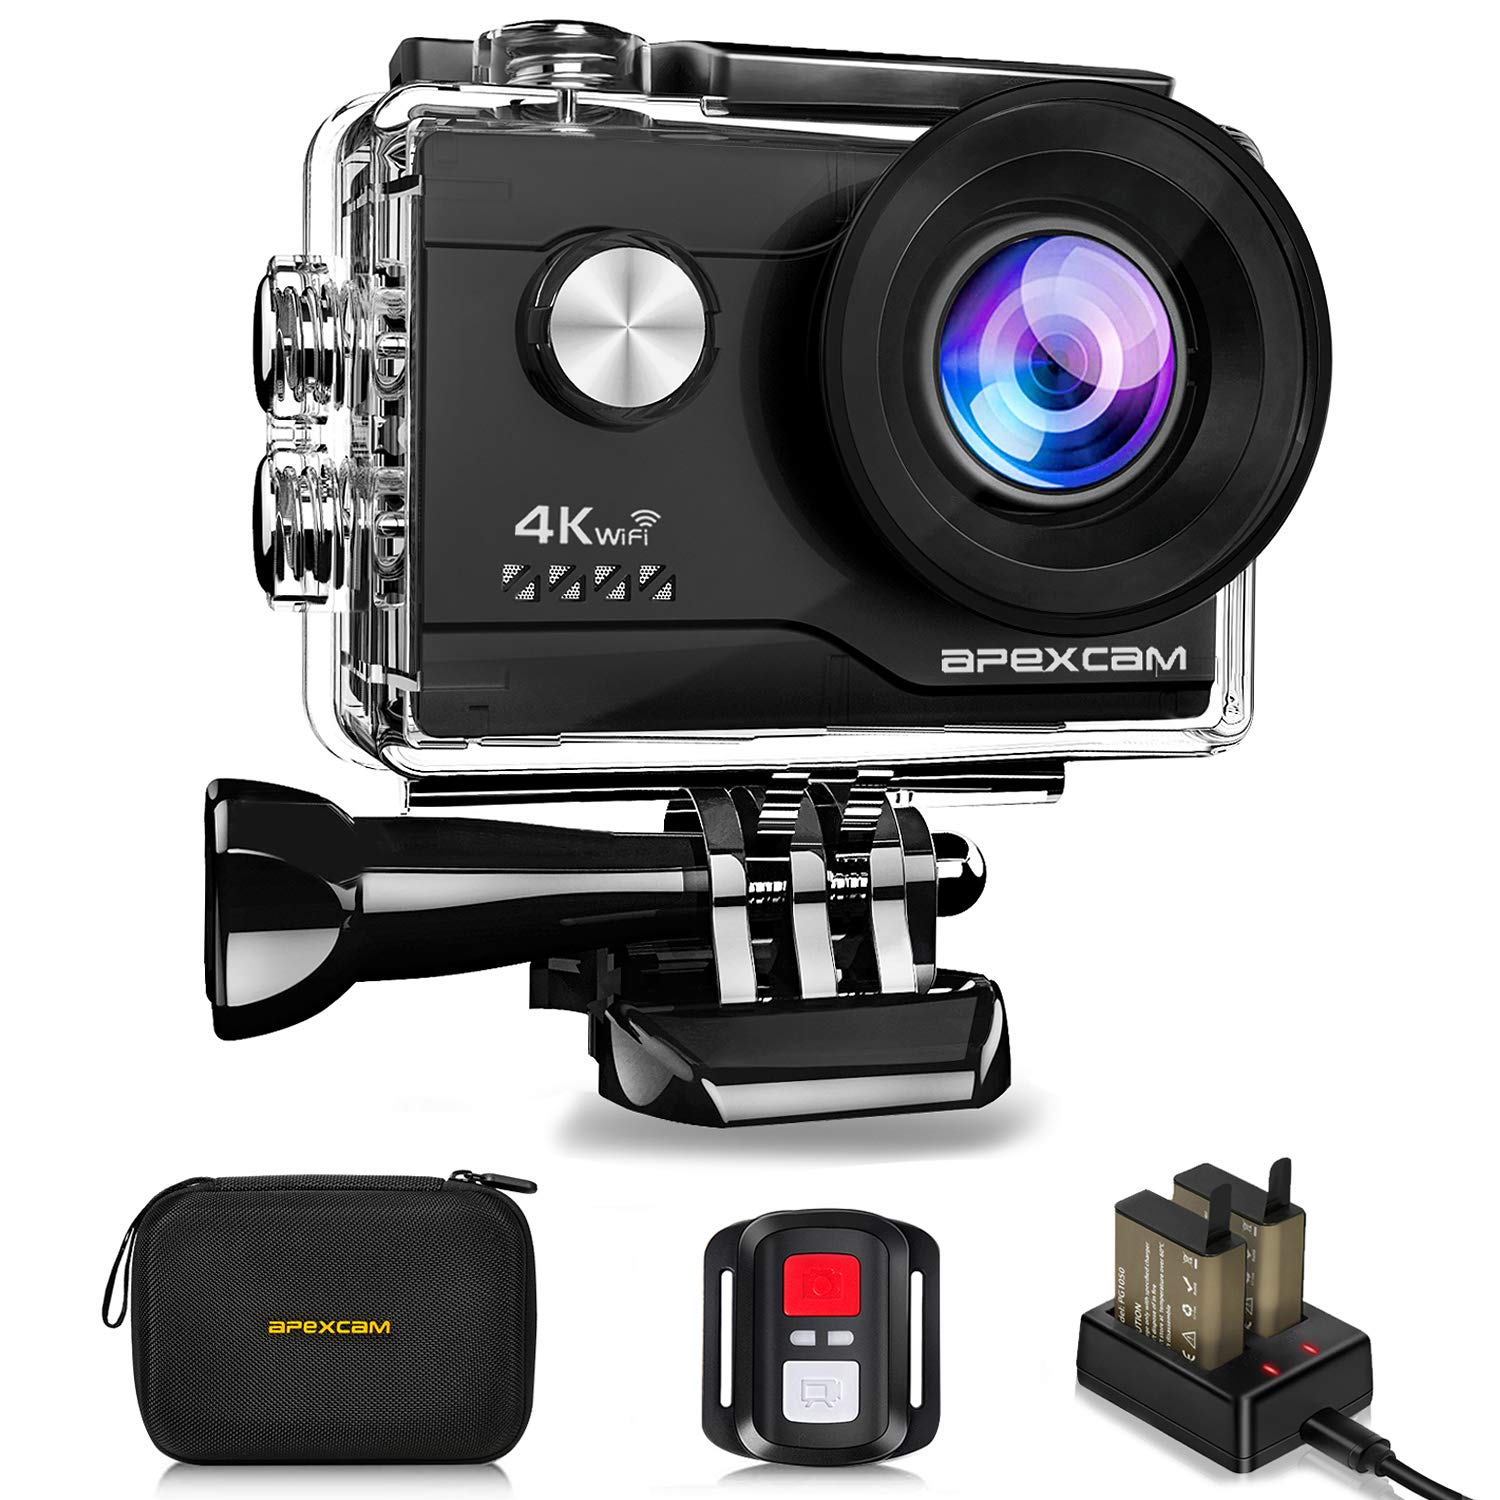 Apexcam 4K 16MP WIFI Action Camera Underwater Waterproof Camera Sports Camera With Sony Sensor 4X Zoom Ultra HD 40M 170° Wide-Angle 2.4G Remote Control 2 Rechargeable Batteries 2.0'' LCD Screen and Accessories Kit M80 Air